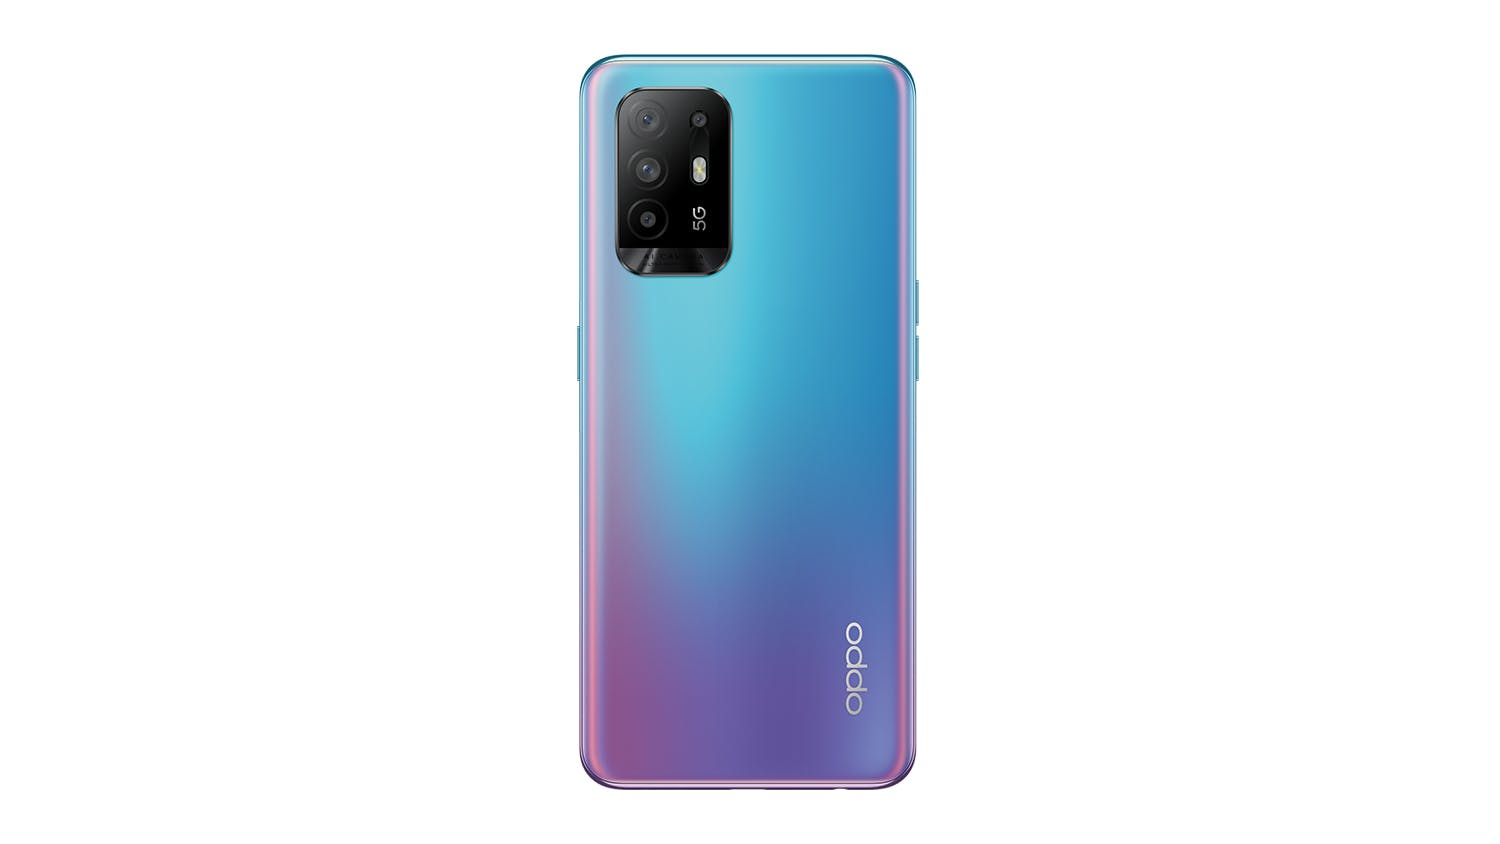 OPPO A94 5G Smartphone - Cosmo Blue